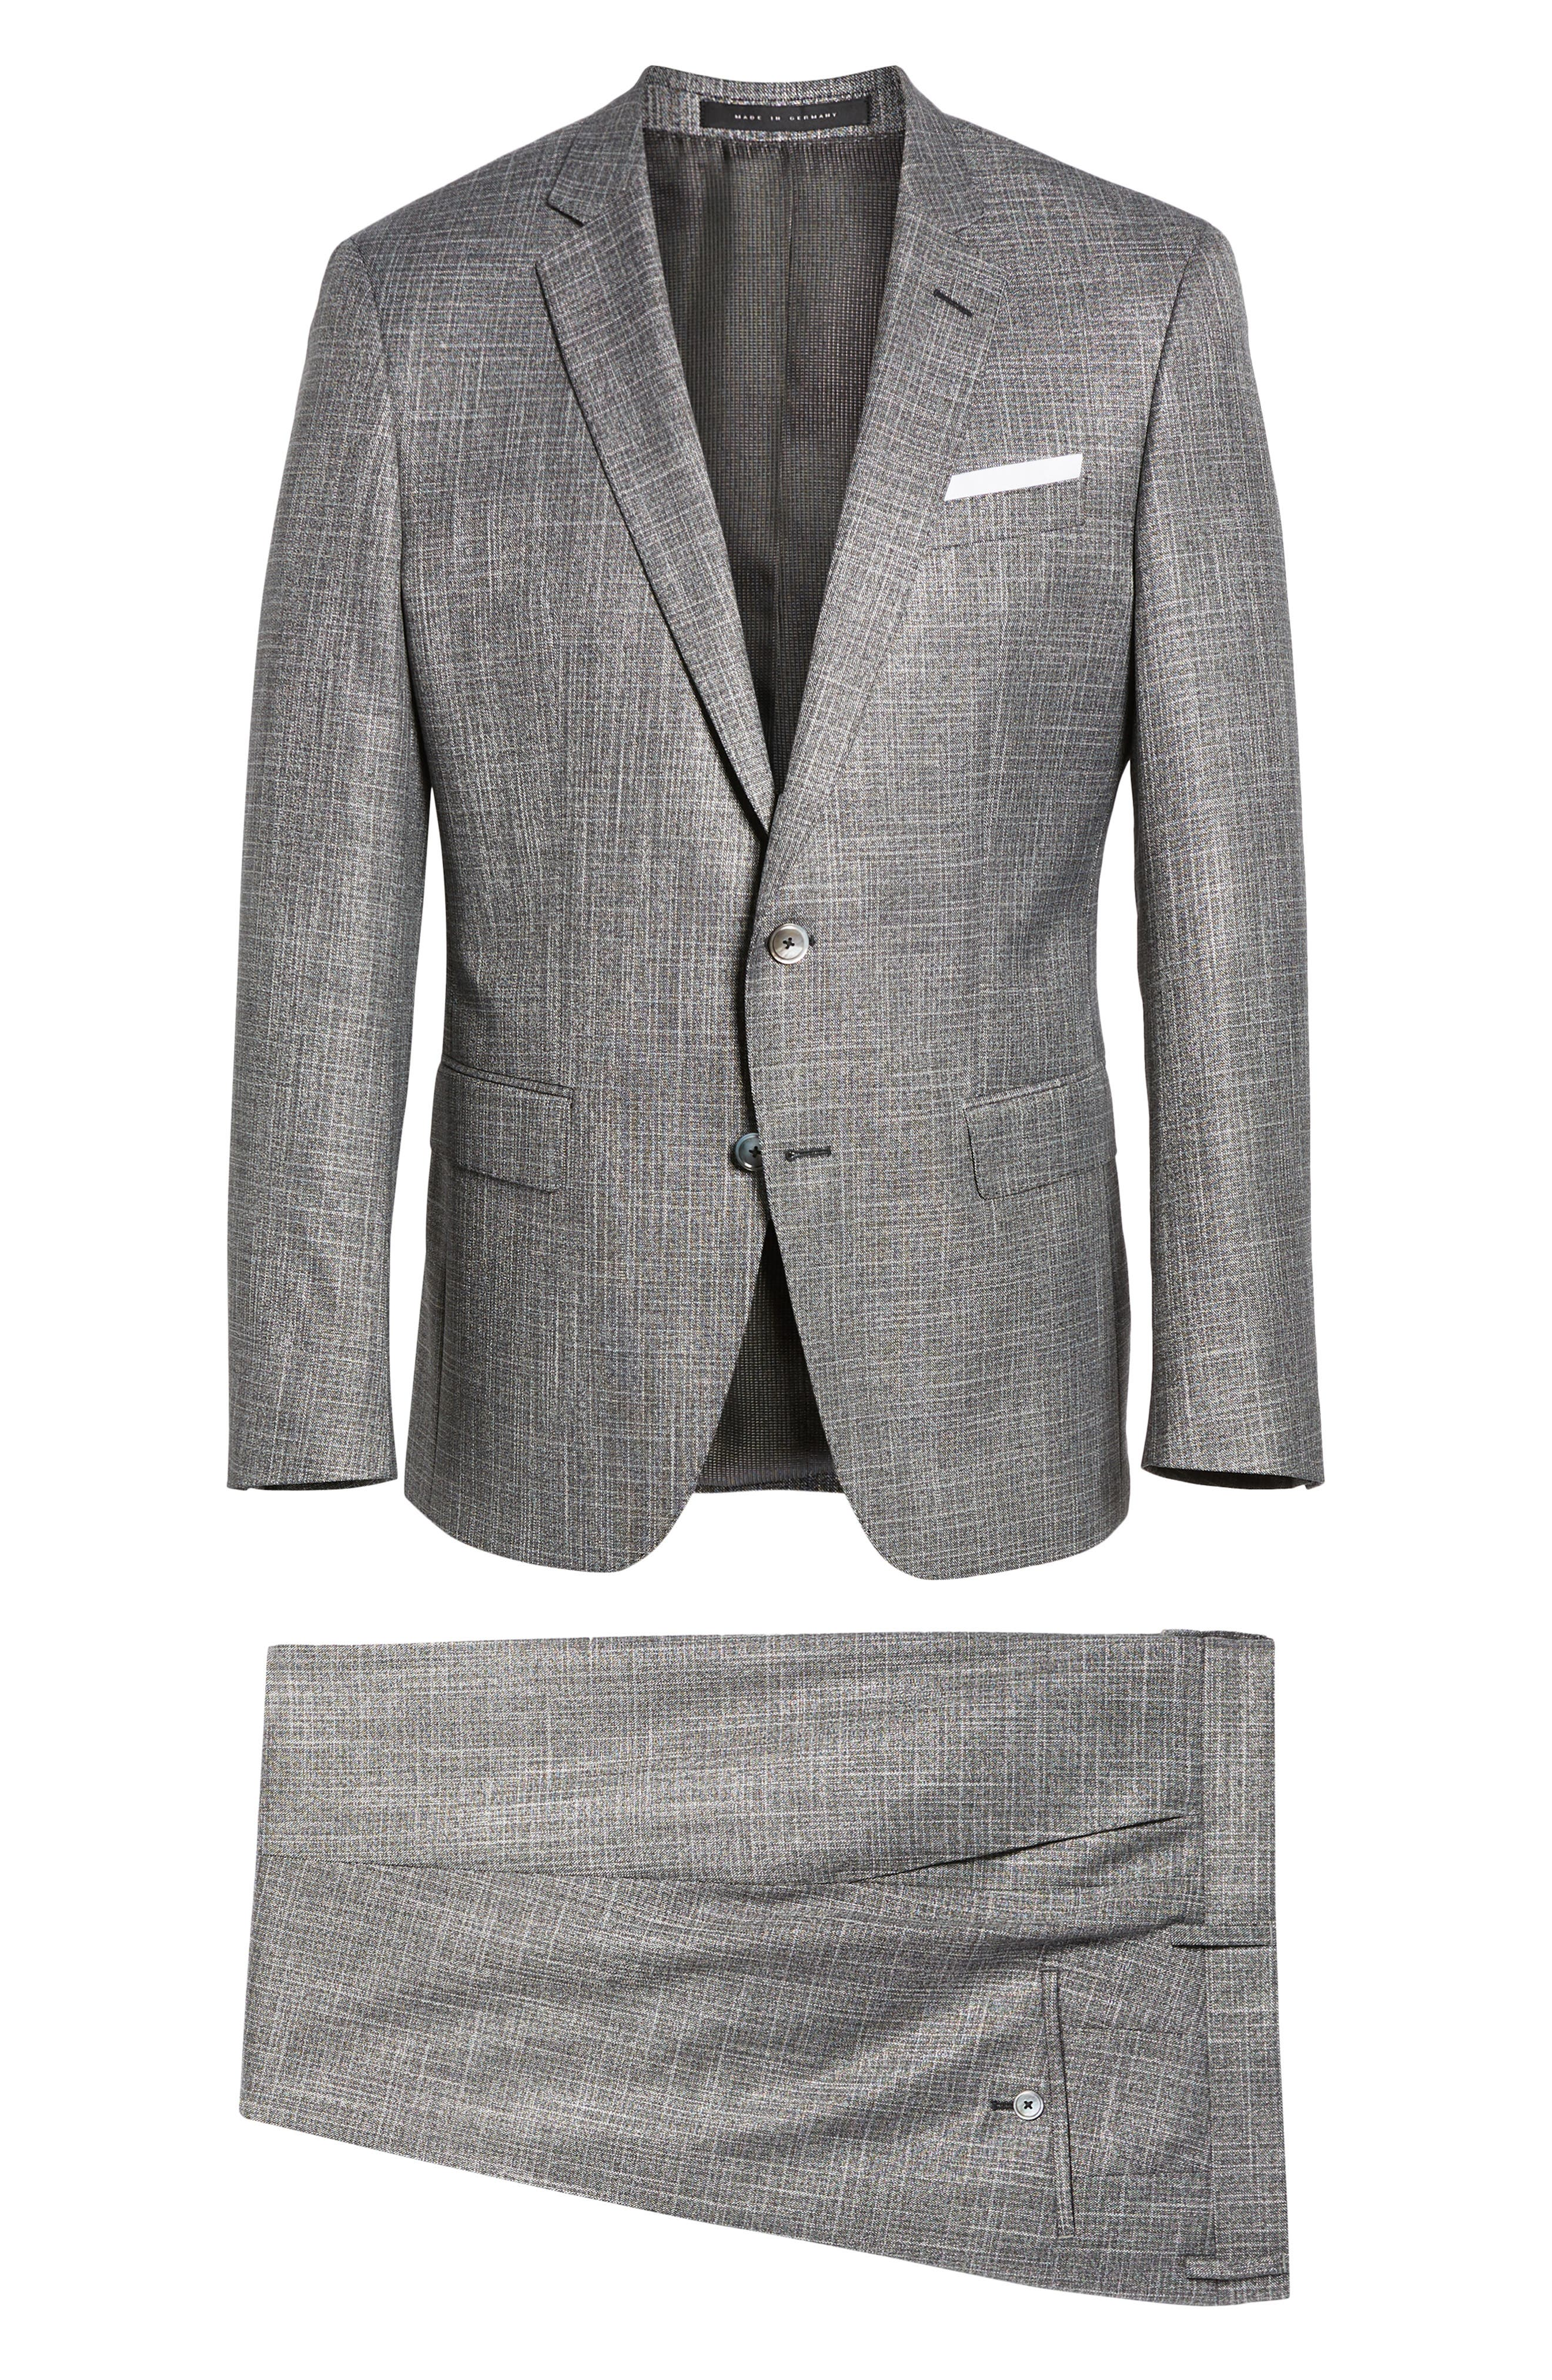 BOSS, Hutson/Gander Slim Fit Solid Wool Blend Suit, Alternate thumbnail 8, color, MEDIUM GREY